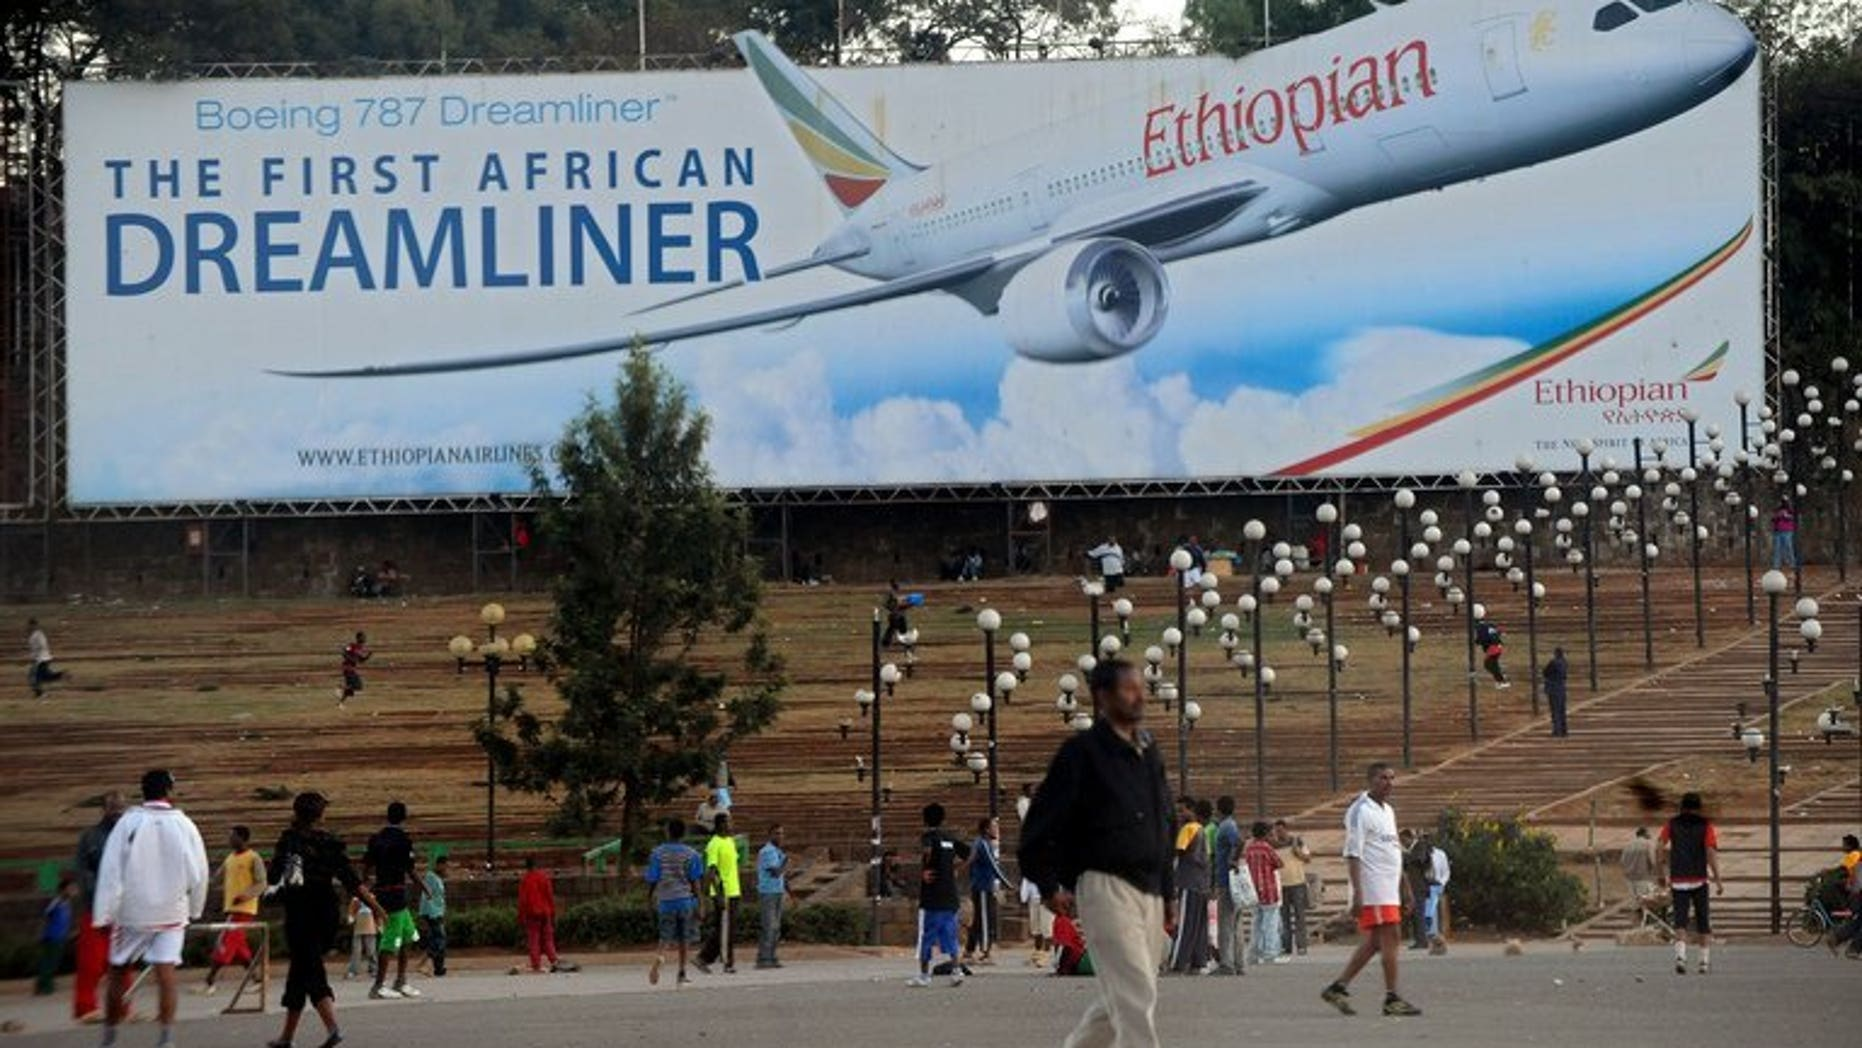 A billboard in Addis Ababa shows an Ethiopian Airlines Boeing 787 Dreamliner plane. British authorities probing a fire onboard a parked Boeing Dreamliner at London's Heathrow airport recommended on Thursday that Honeywell distress beacons on all 787 planes be deactivated pending further checks.